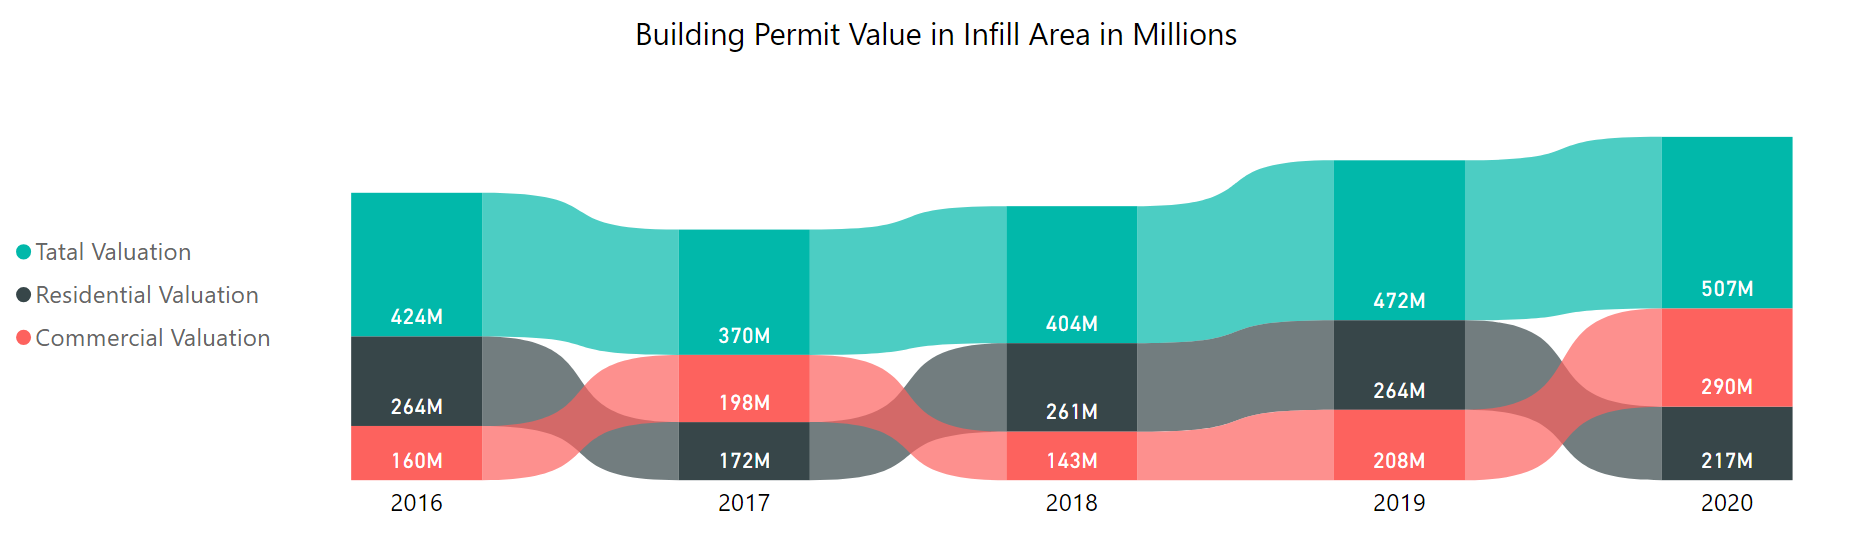 building permit valuations in infill area in millions by year 2016 to 2020. total valuation increased from $242m in 2016 to $507m in 2020. Residential and commercial valuations have fluctuated. in 2020 commercial was $290m and residential was $217m